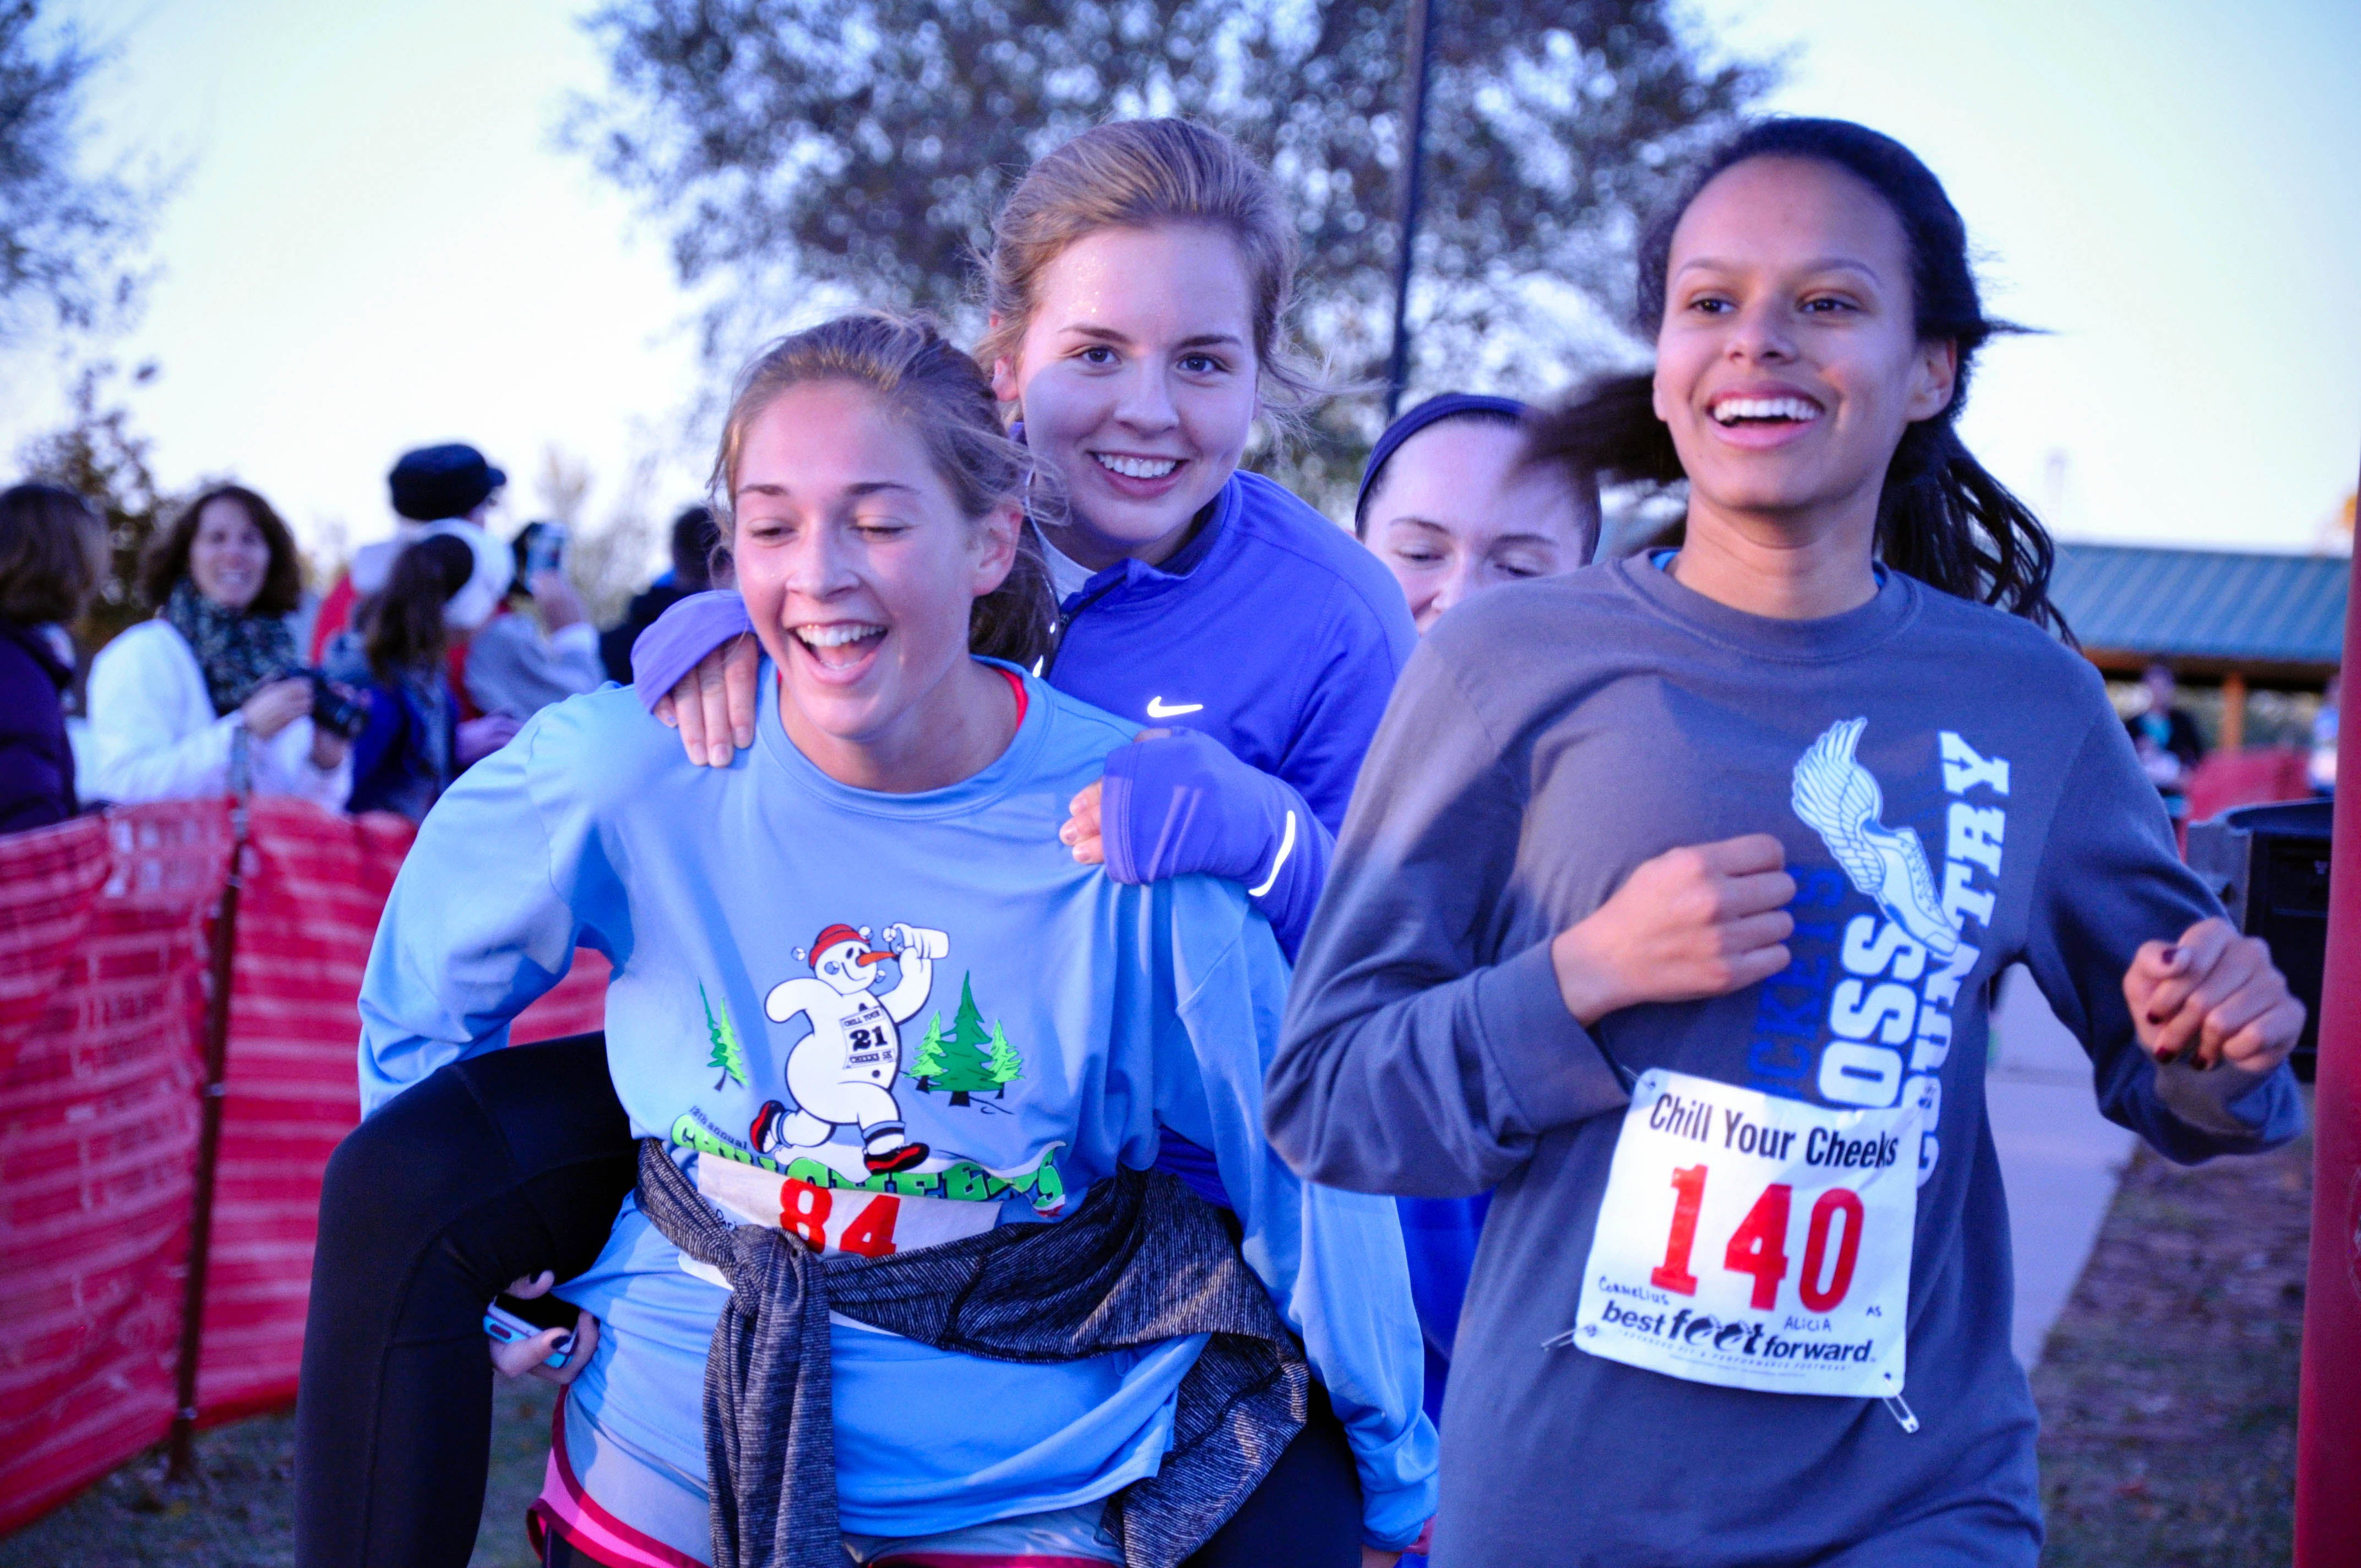 Chill Your Cheeks 5K Registration Attracts Runners from All Over Oklahoma